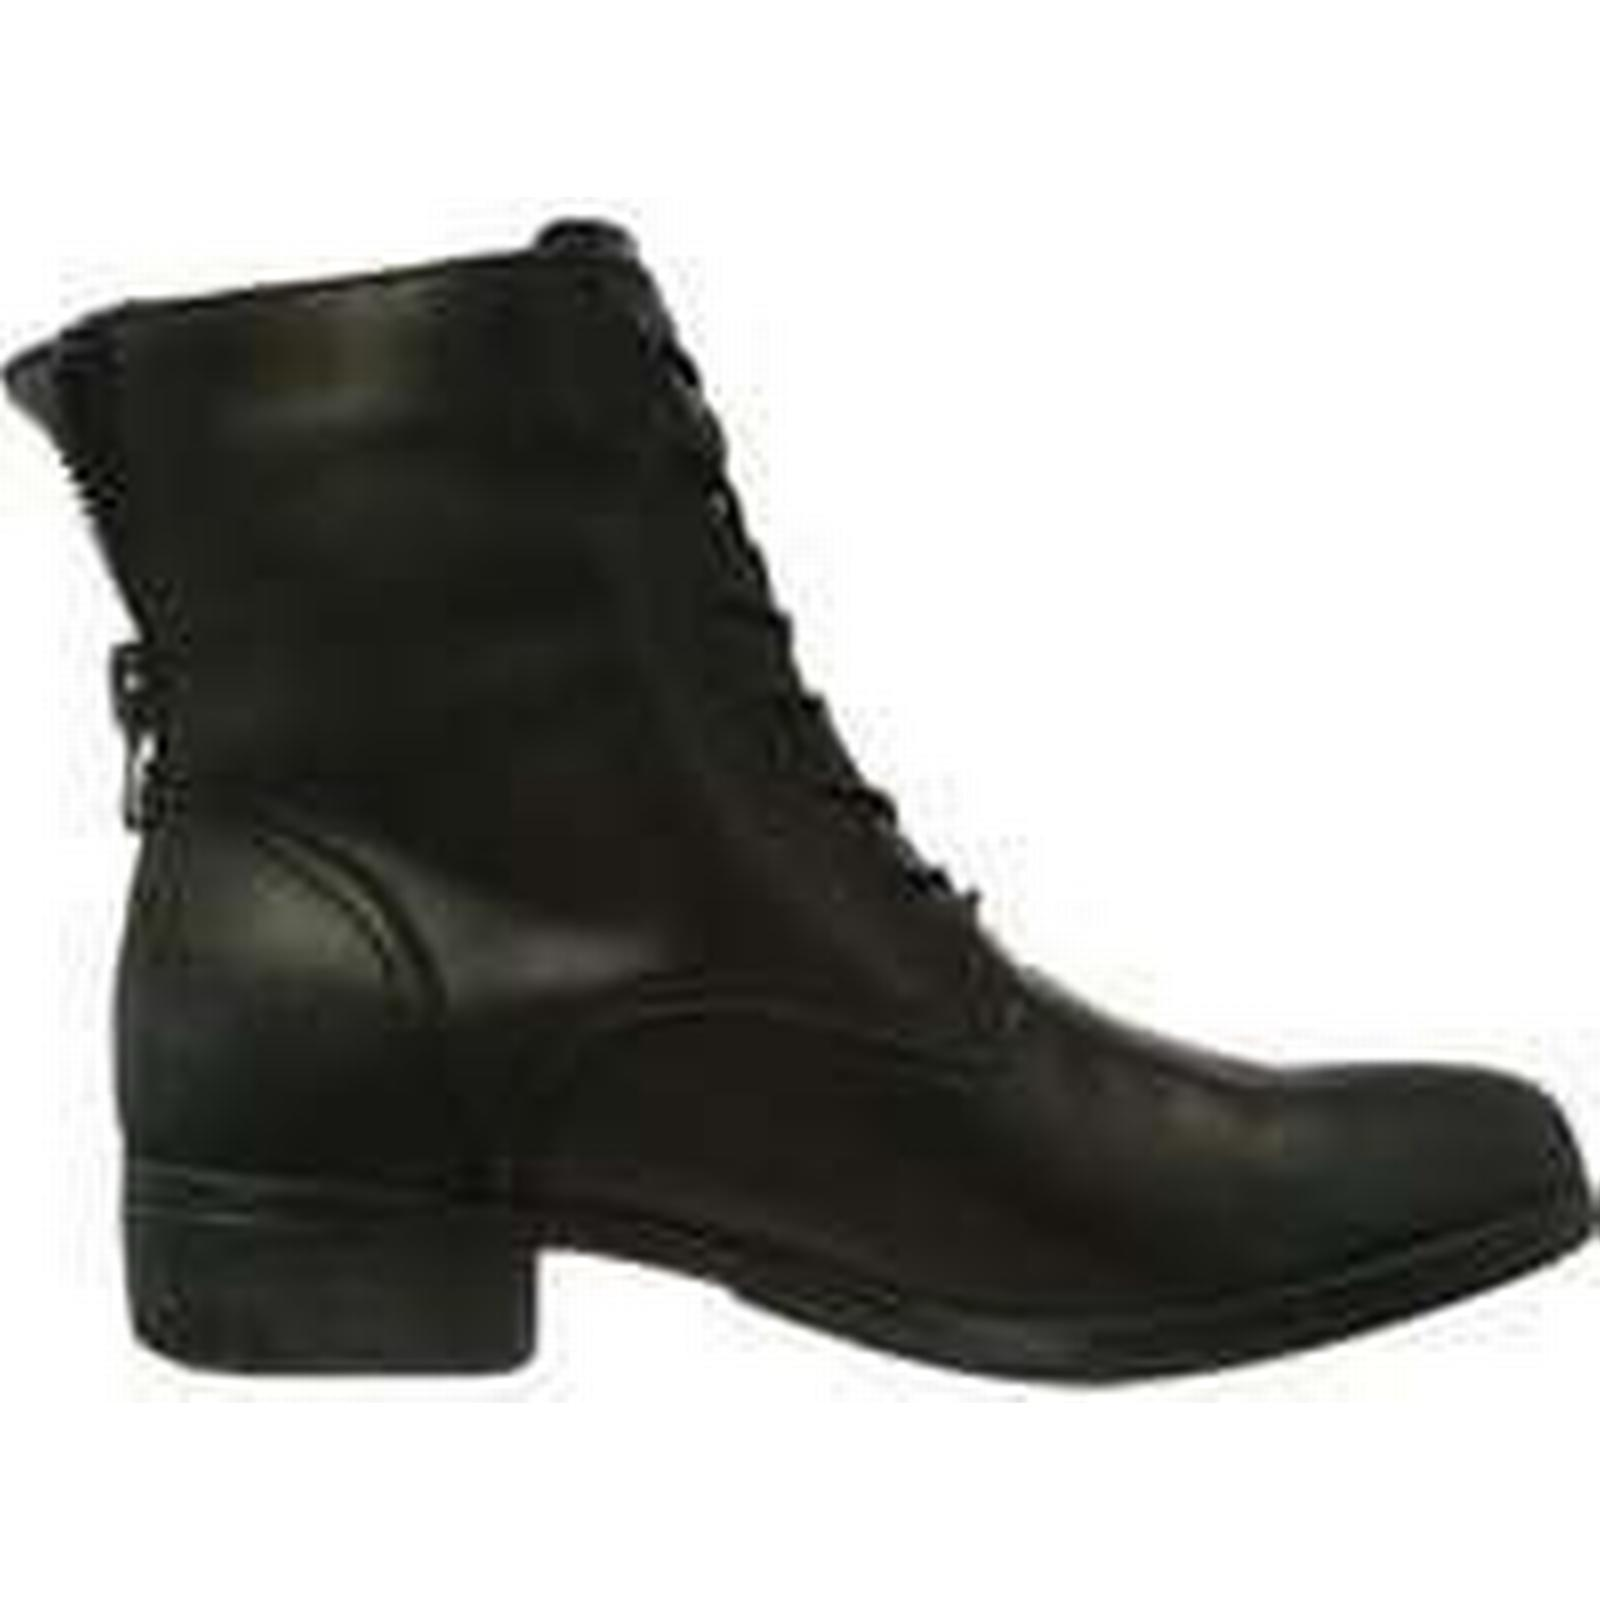 Spartoo.co.uk Boots Replay Civic women's Mid Boots Spartoo.co.uk in Black bc2577